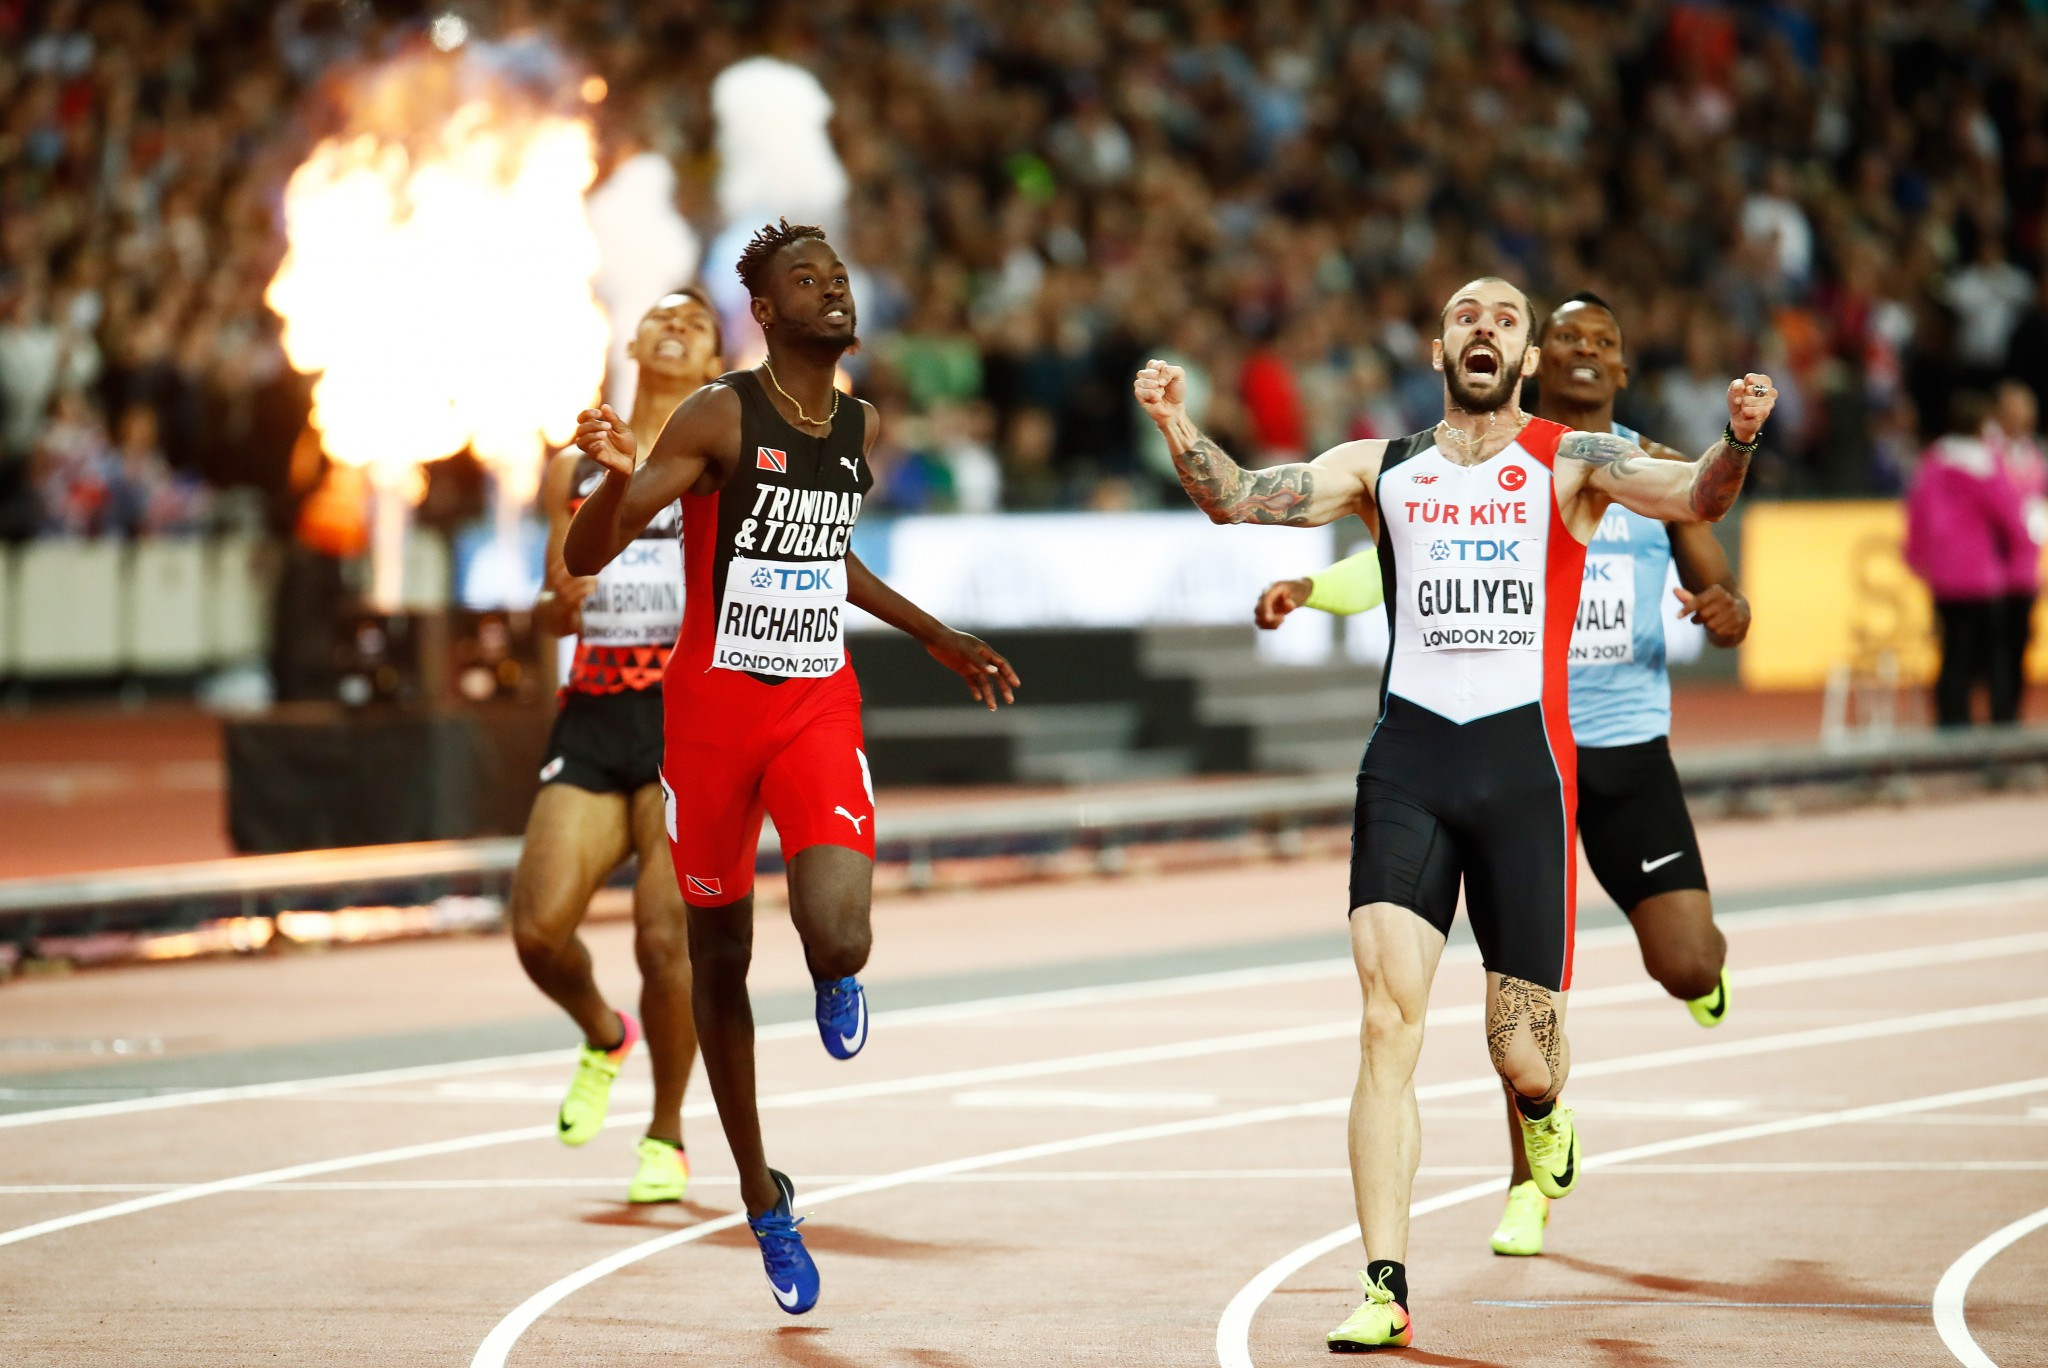 American double before Turkish delight at IAAF World Championships